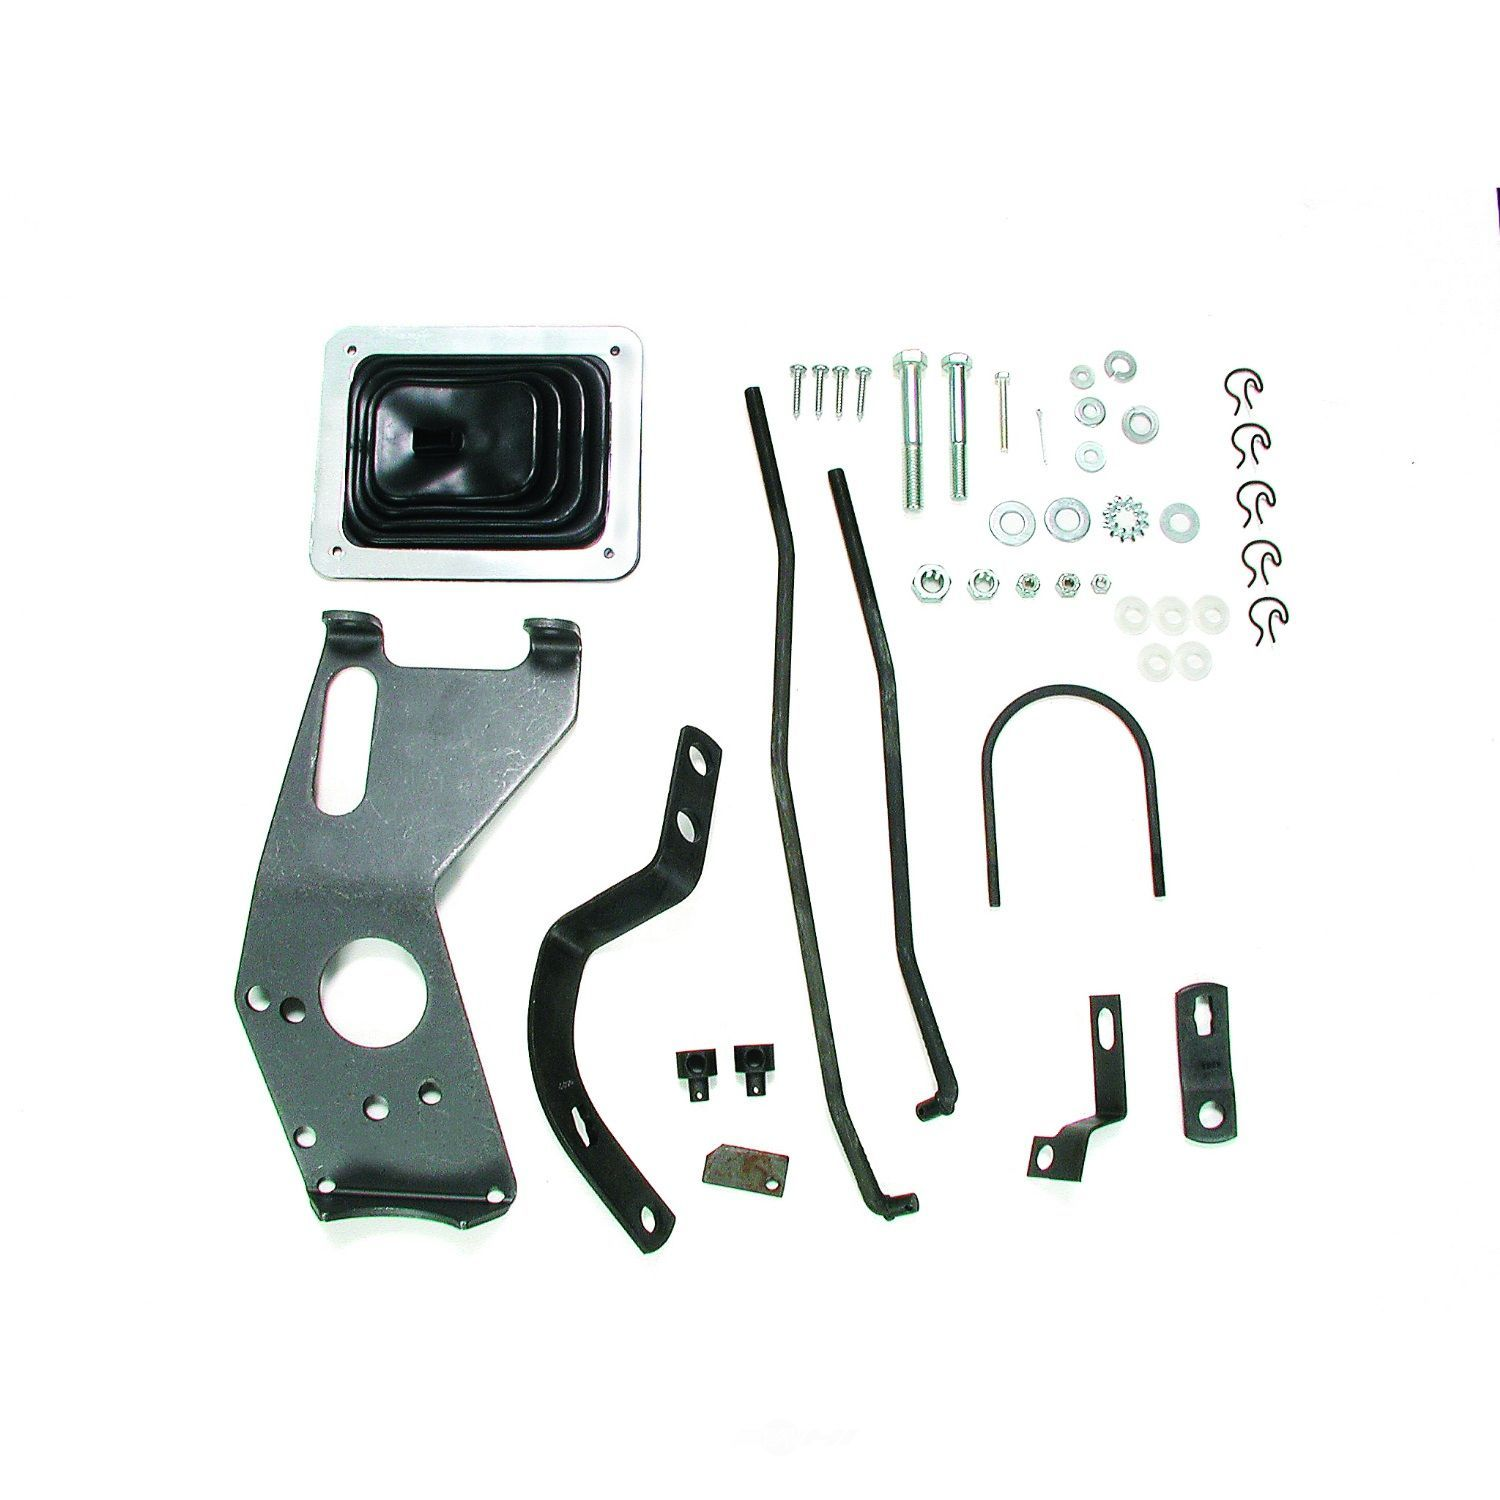 HURST - 3-speed Gear Shift Installation Kit - HUR 3670010